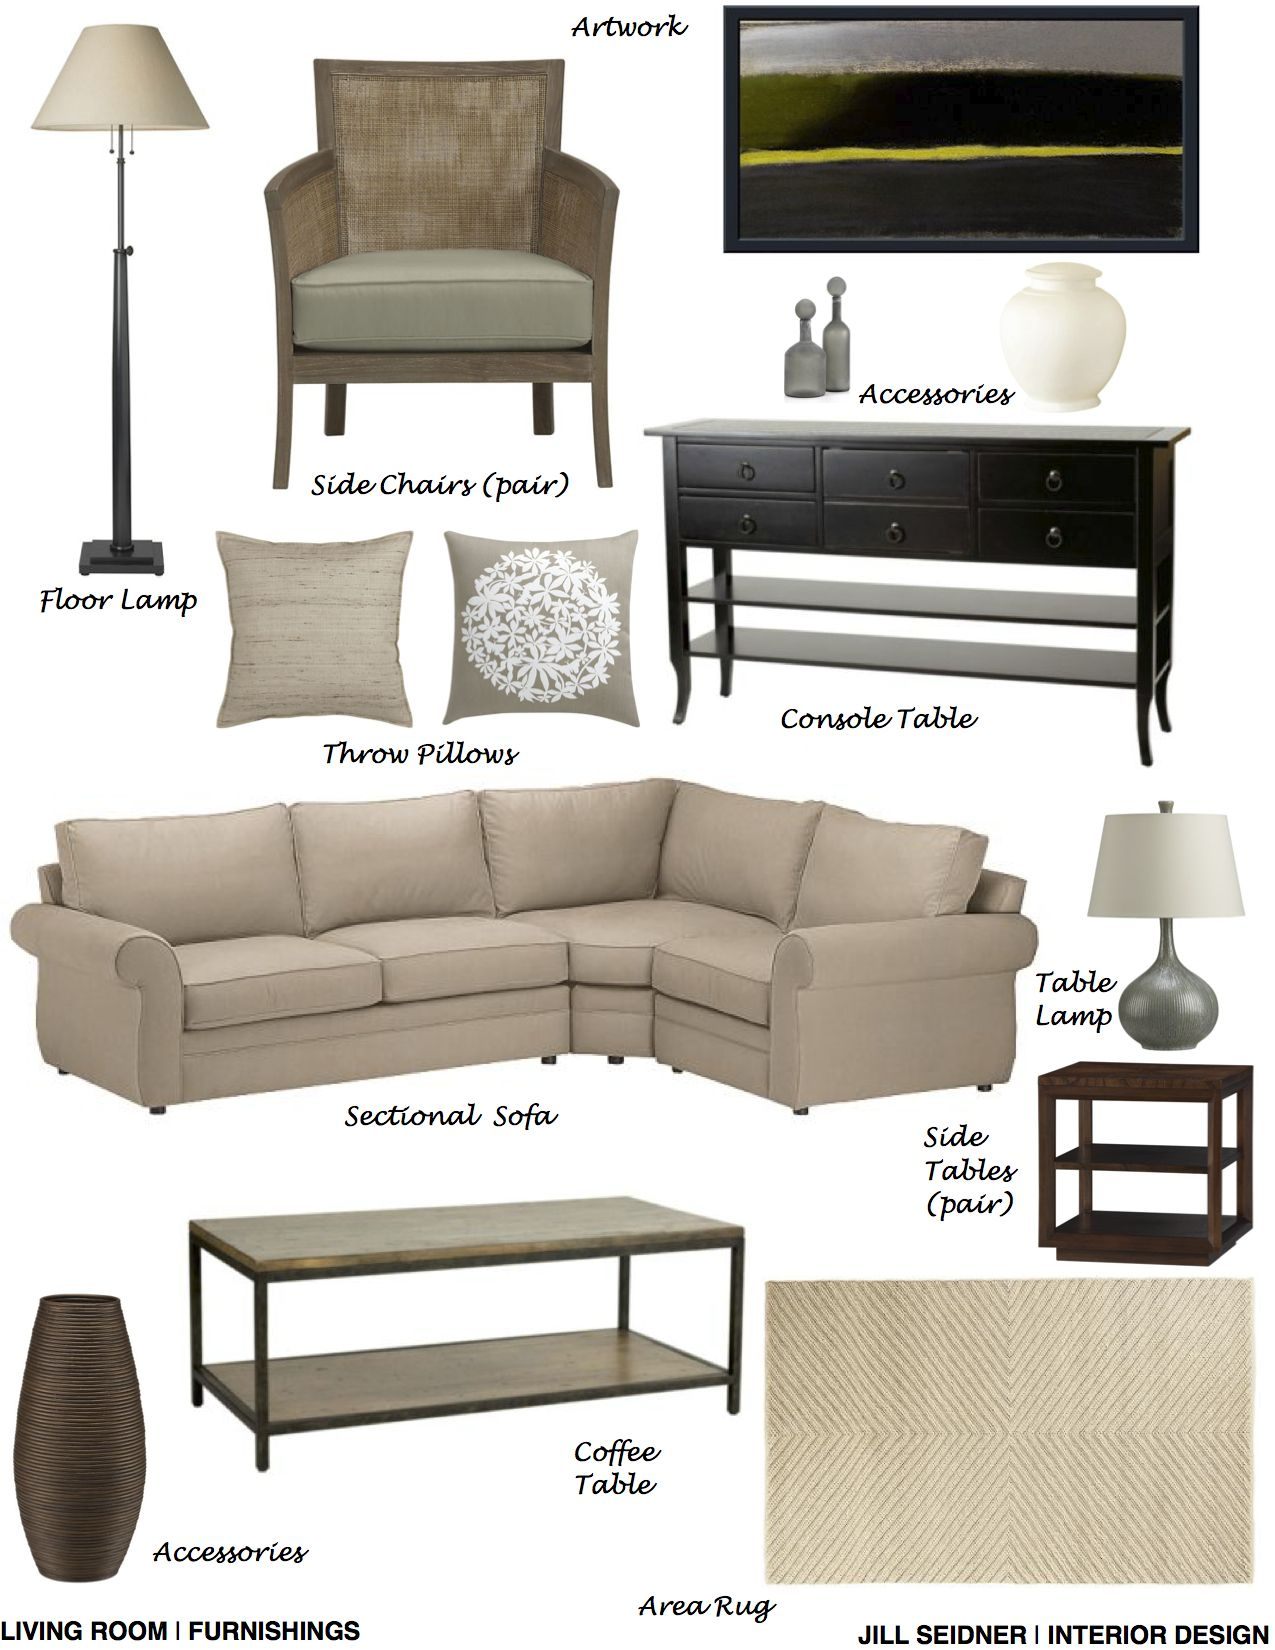 Raleigh Nc Online Design Project Living Room Furnishings Concept Board Interior Design Interior Design Boards Classy Living Room